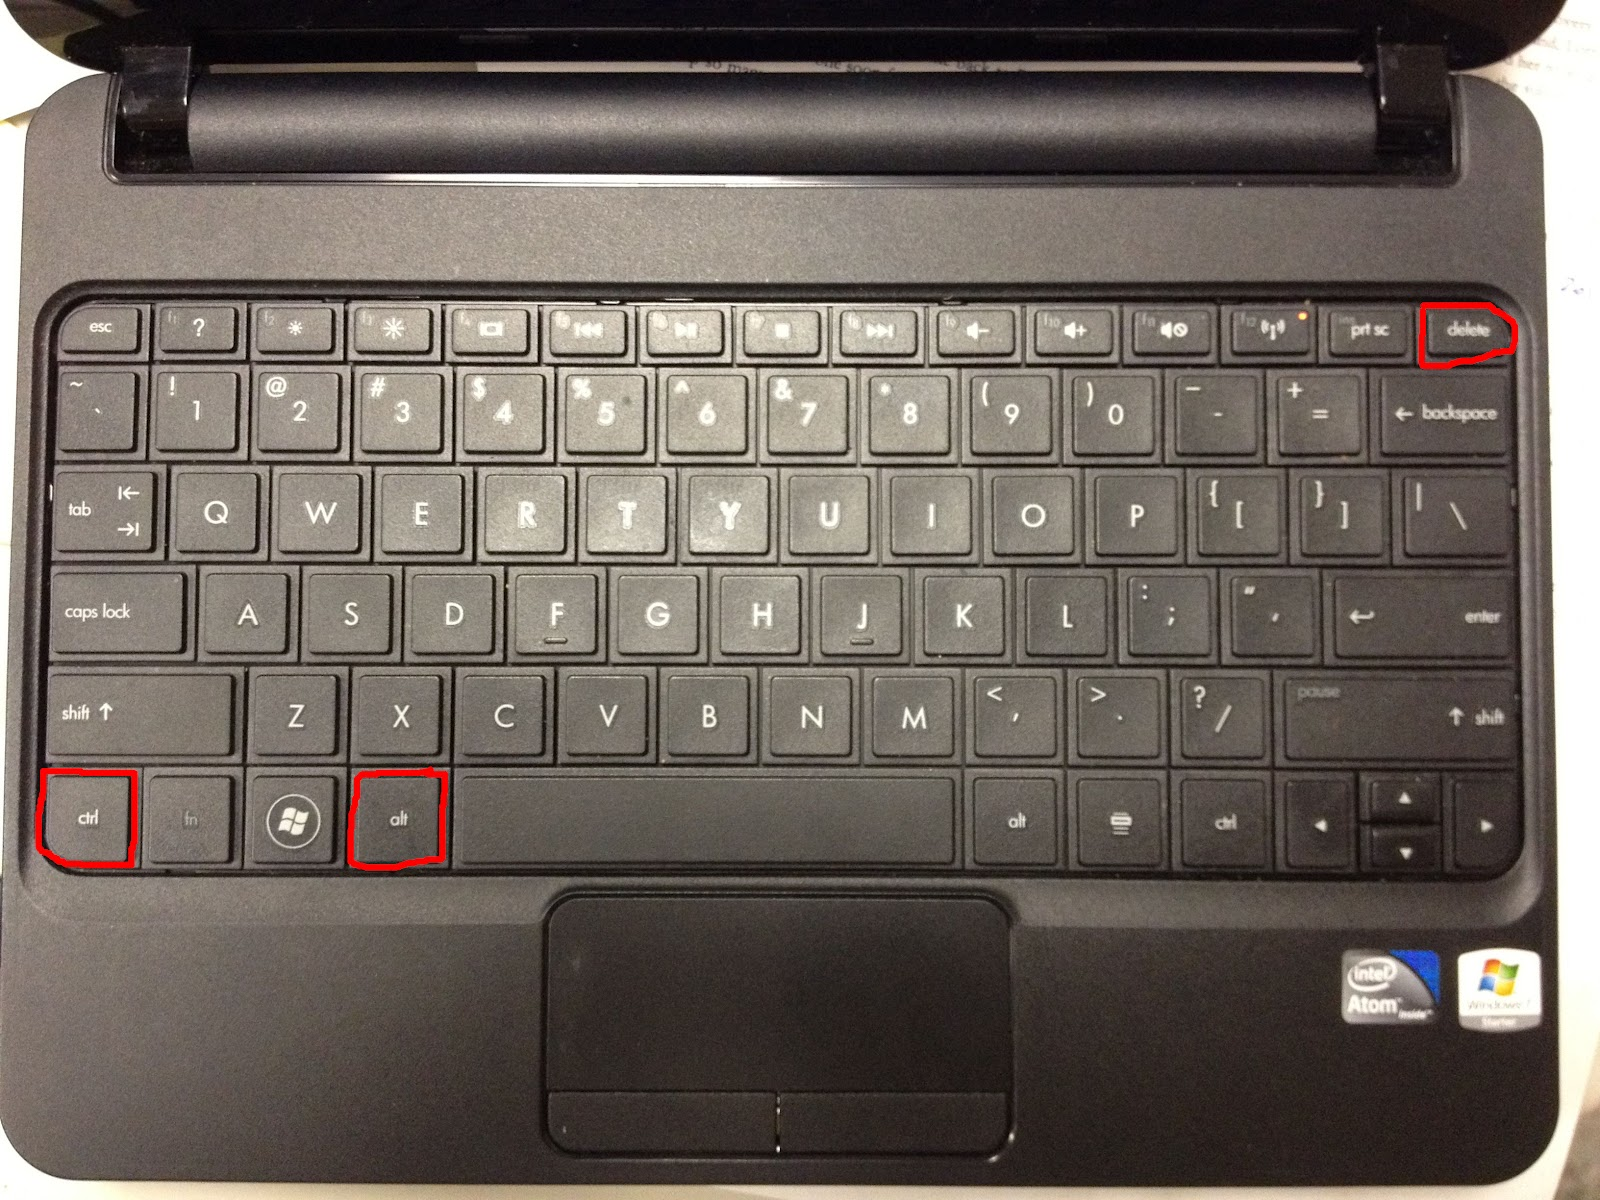 How to reset the password on a hp mini running windows 7 share your